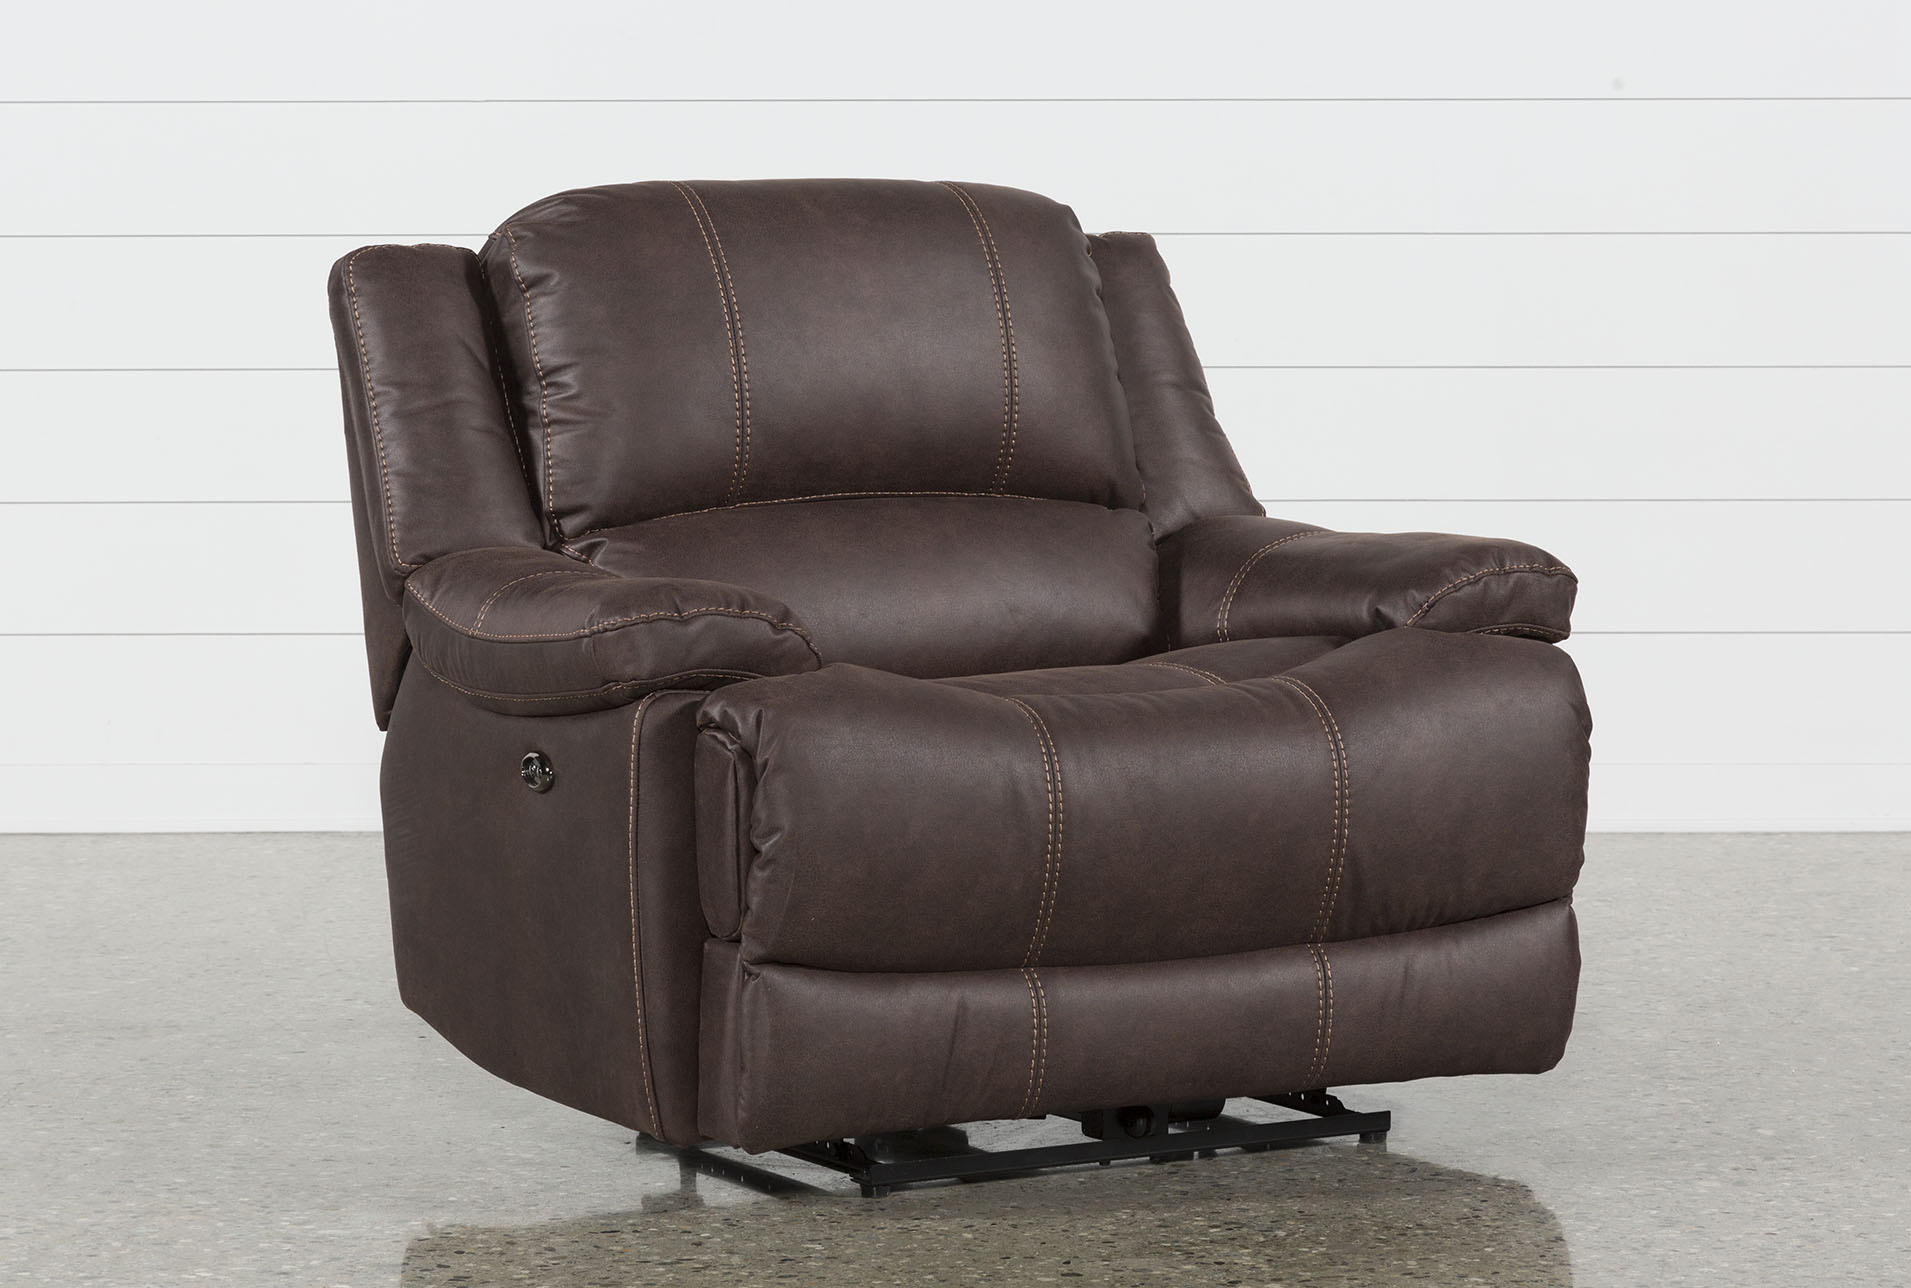 Get a recliner chair, to take  care!